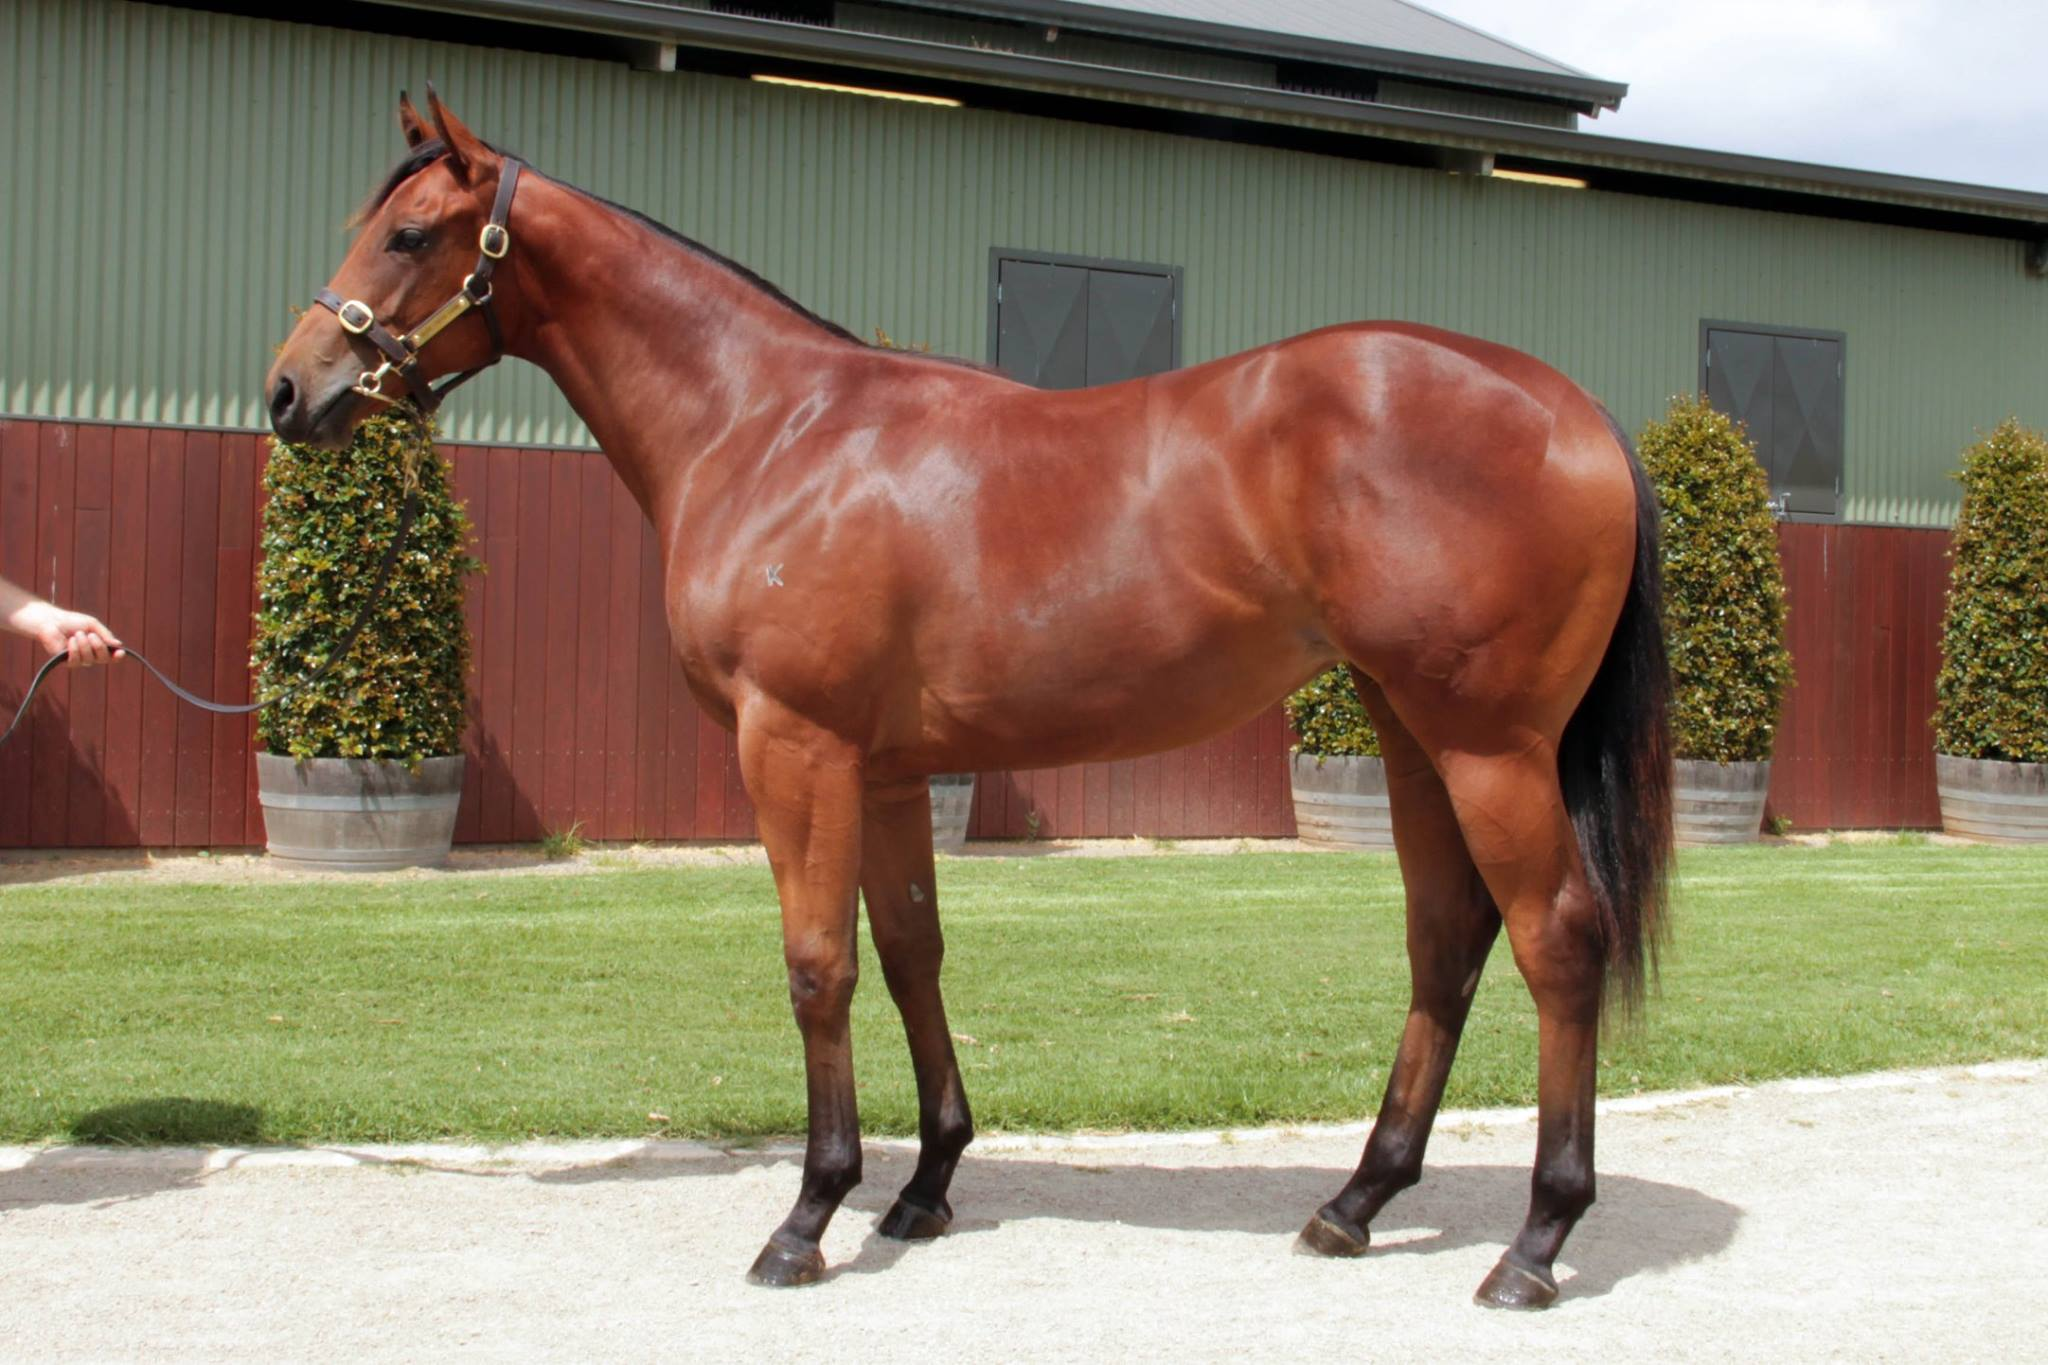 LOT 820  SIRE: I Am Invincible  DAM: If I Can I Can (NZ)  Bay Filly  PURCHASER: Vandyke Racing  PRICE: $475,000.00